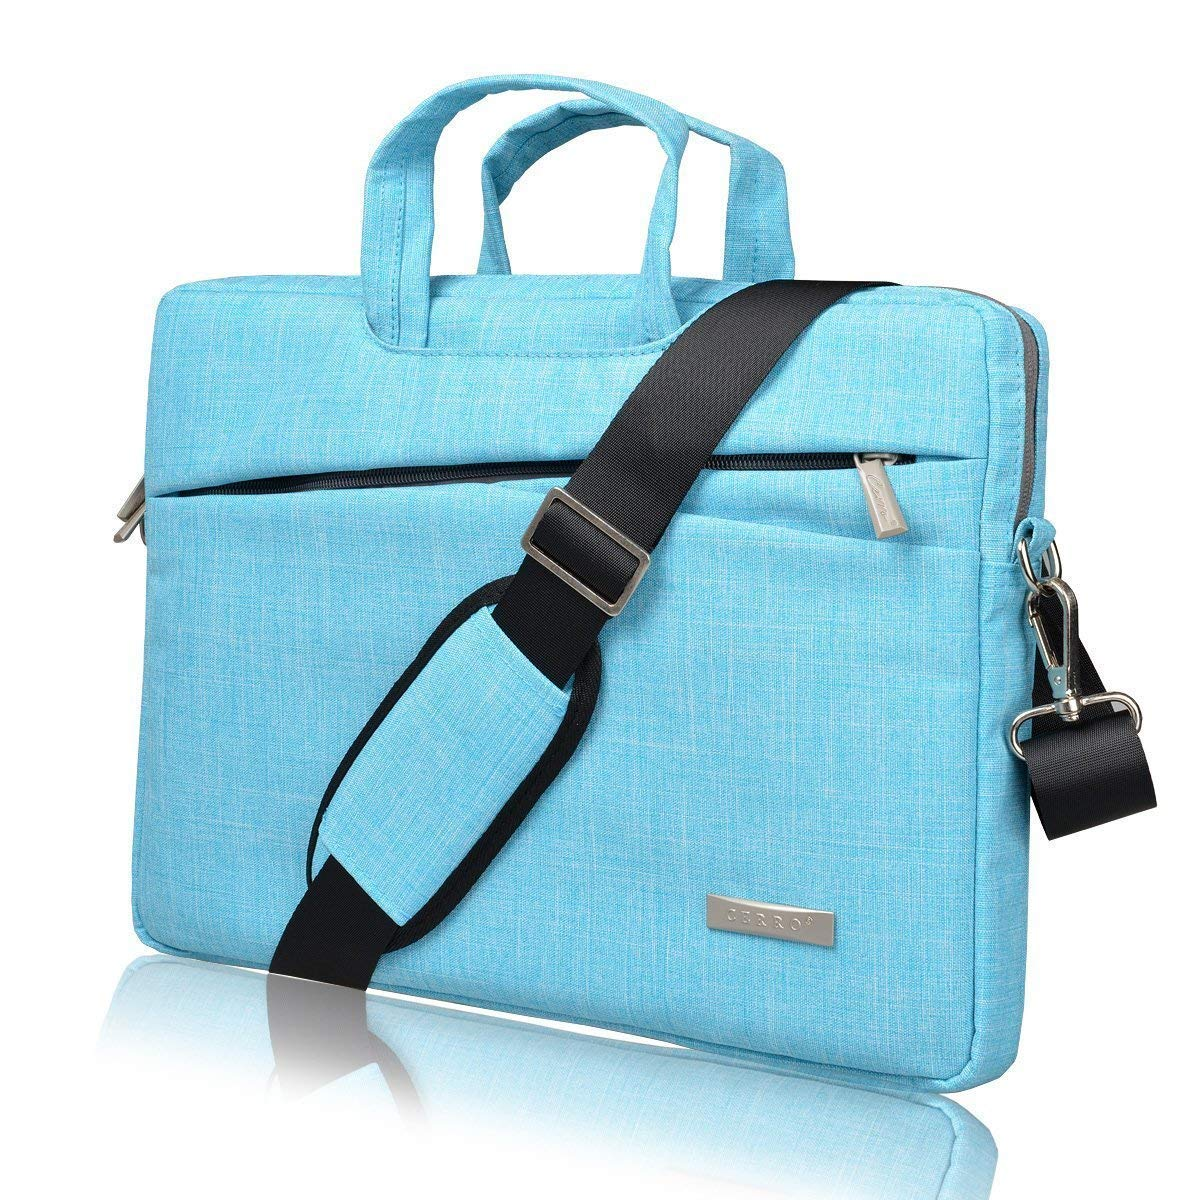 14716950189e BingGoGo Laptop Bag 15.6 Inch Briefcase Shoulder Bags,Water Repellent  Laptop Bag Briefcases Bussiness Carrying,Compatible Ultrabook MacBook 15.6  Inch ...